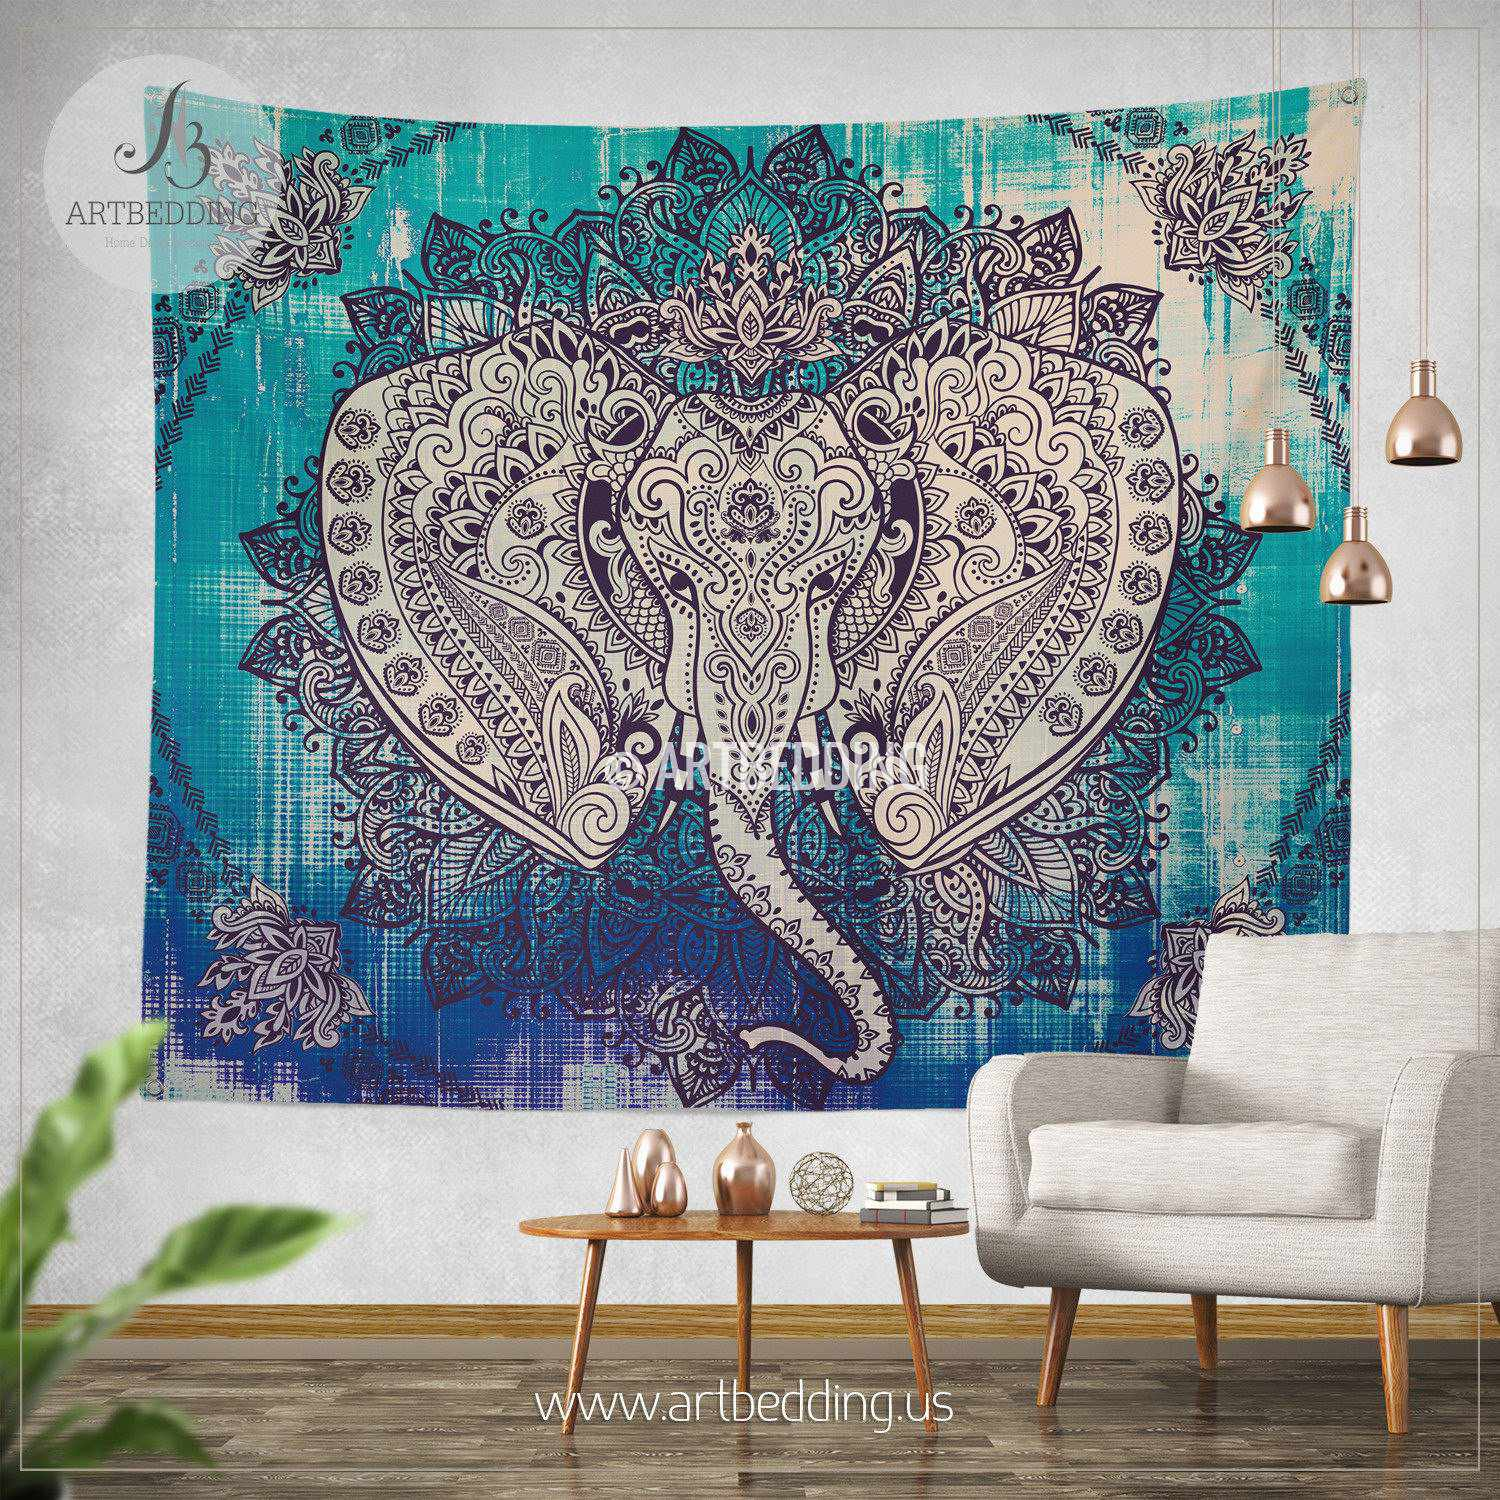 ... Boho Elephant Tapestry, Ganesh Elephant Wall Hanging, Indie Shabby Chic  Distressed Tapestry Wall Decor ...